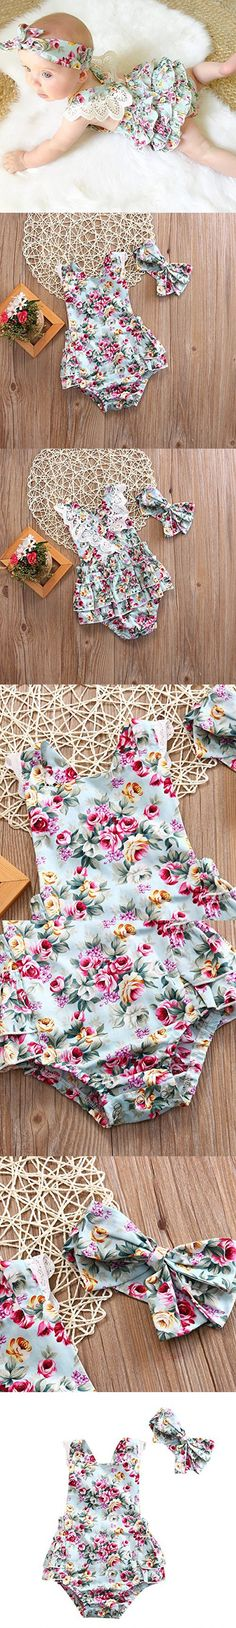 Baby Infant Girls Rompers Lace Dress Backless Floral Jumpsuit with Headband Floral) Backless Dresses Baby Girl Fashion, Kids Fashion, Everything Baby, Infant Girls, Girls Rompers, Cute Baby Clothes, Baby Sewing, Floral Jumpsuit, Kind Mode